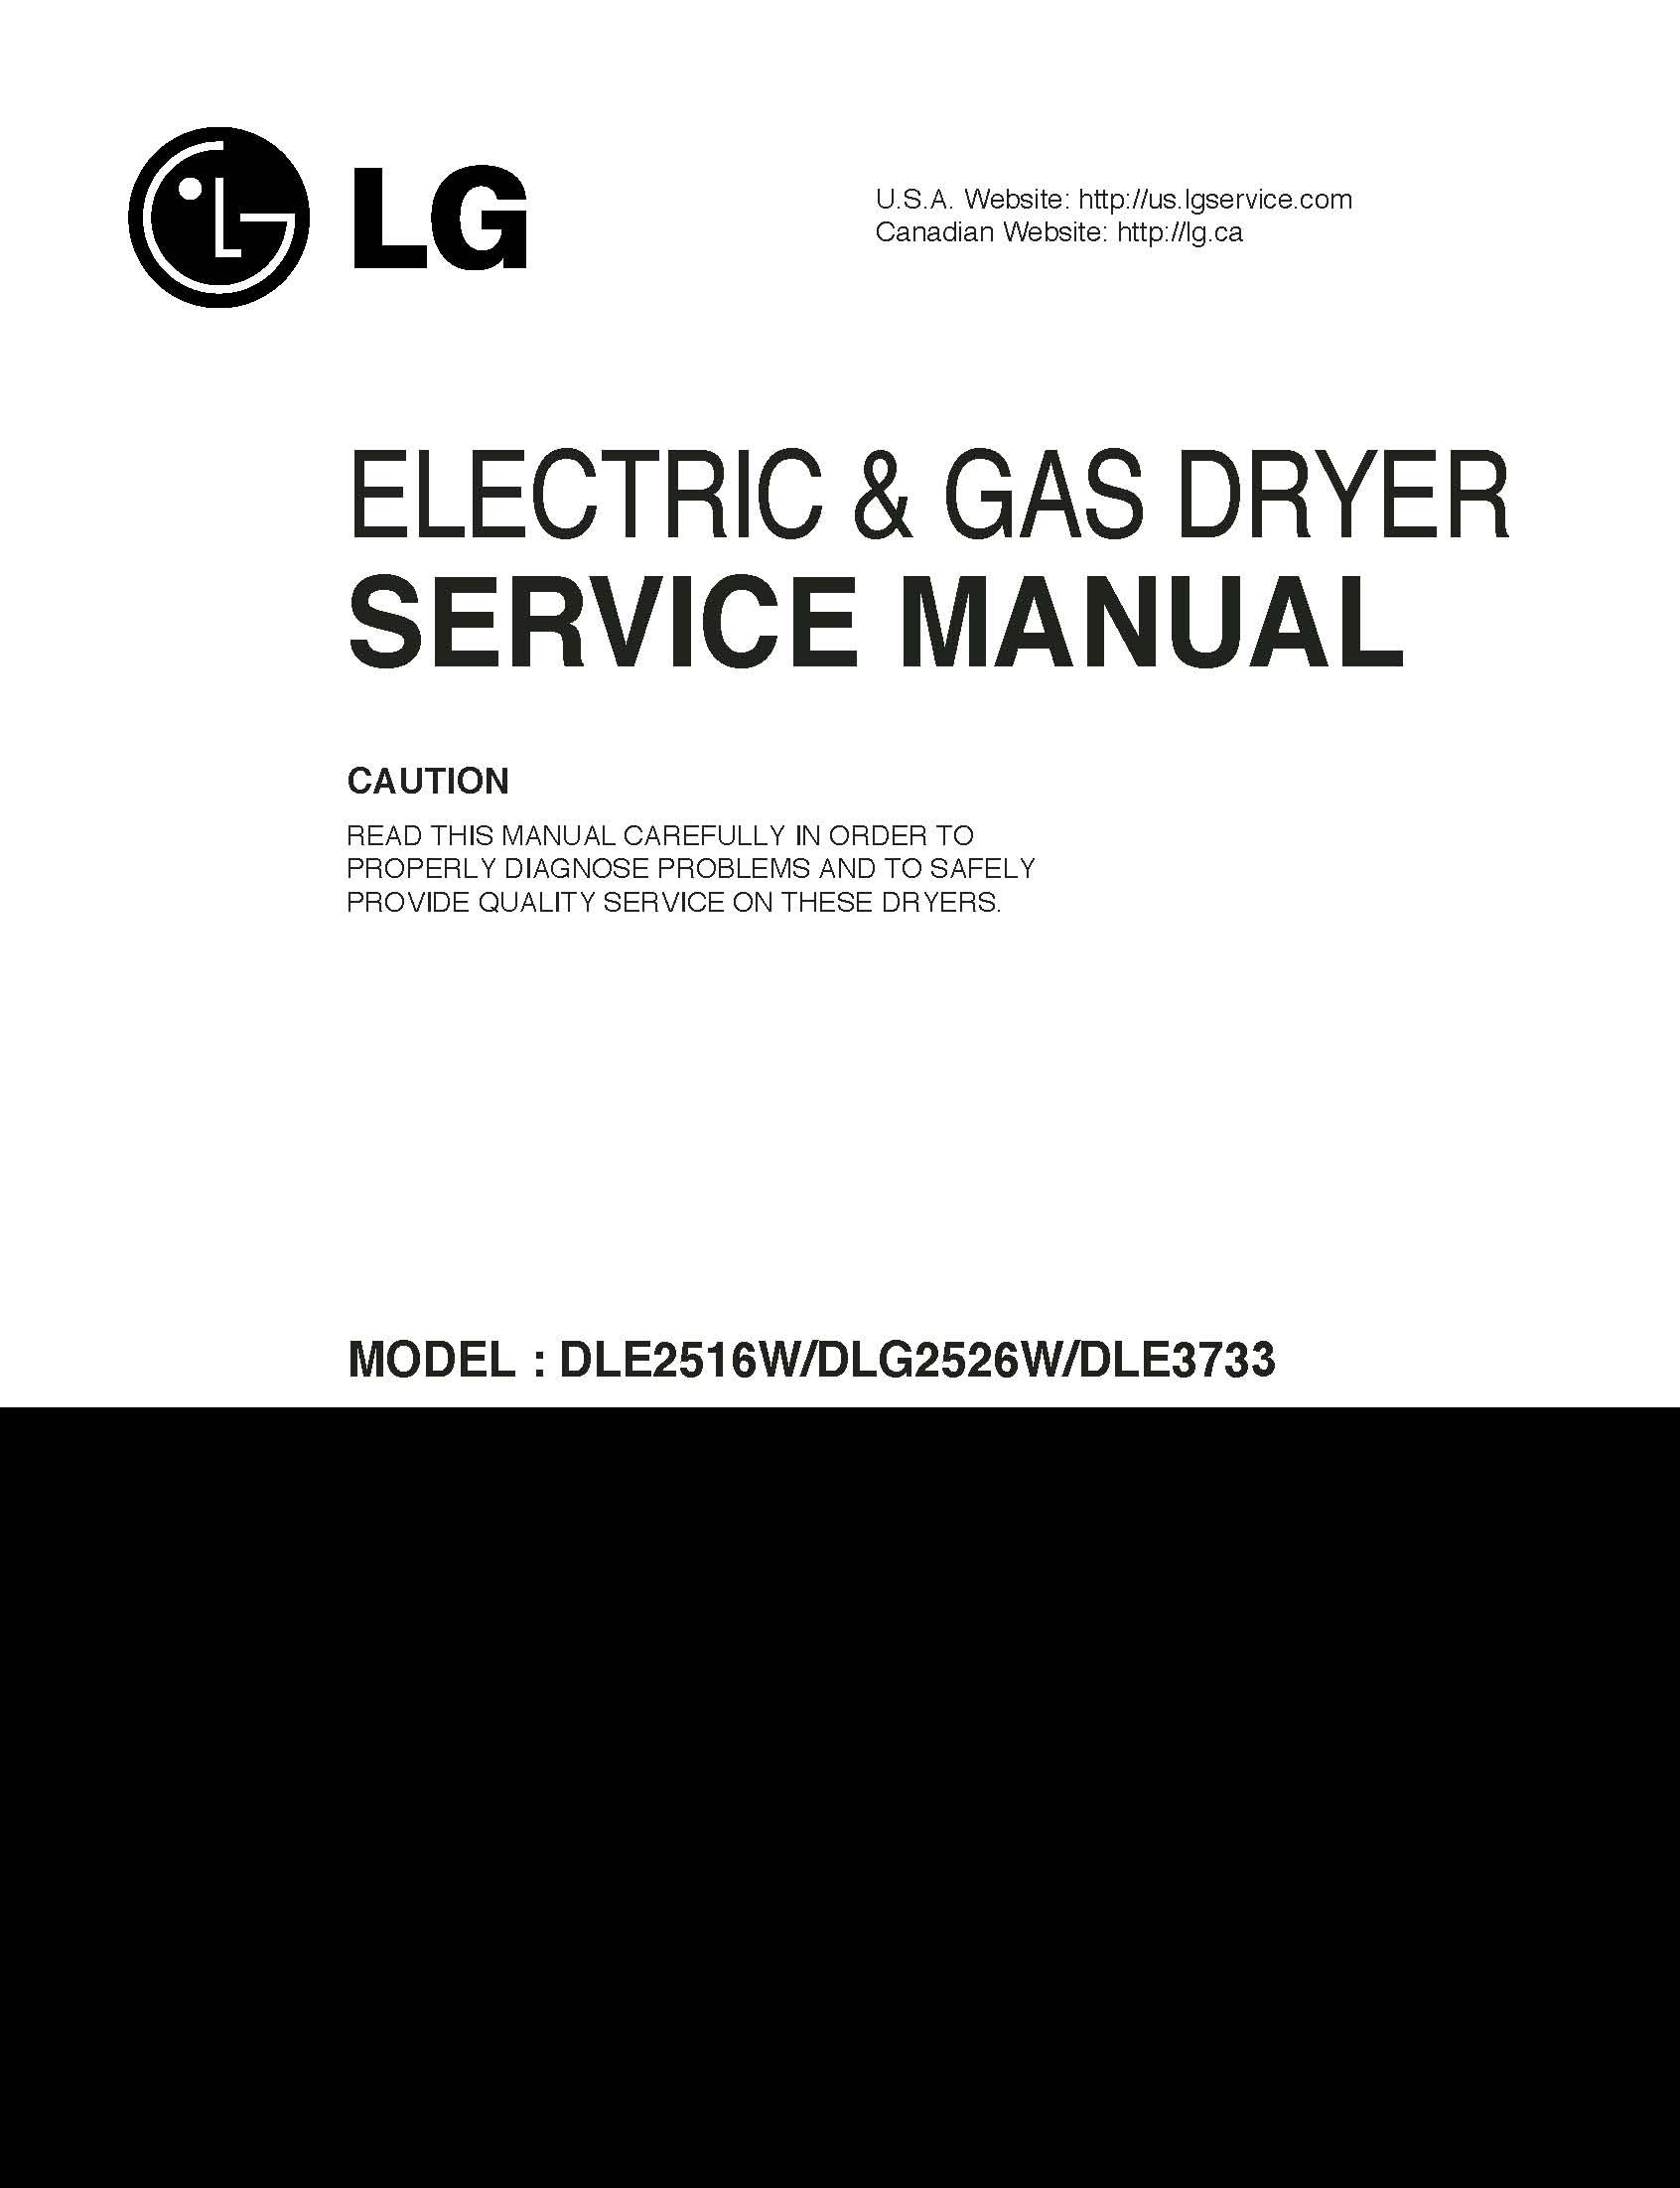 lg dlg2526w dle2516w dle3733 service manual lg amazon com books rh amazon com Home Depot Washer and Dryer Sets LG Washer and Dryer